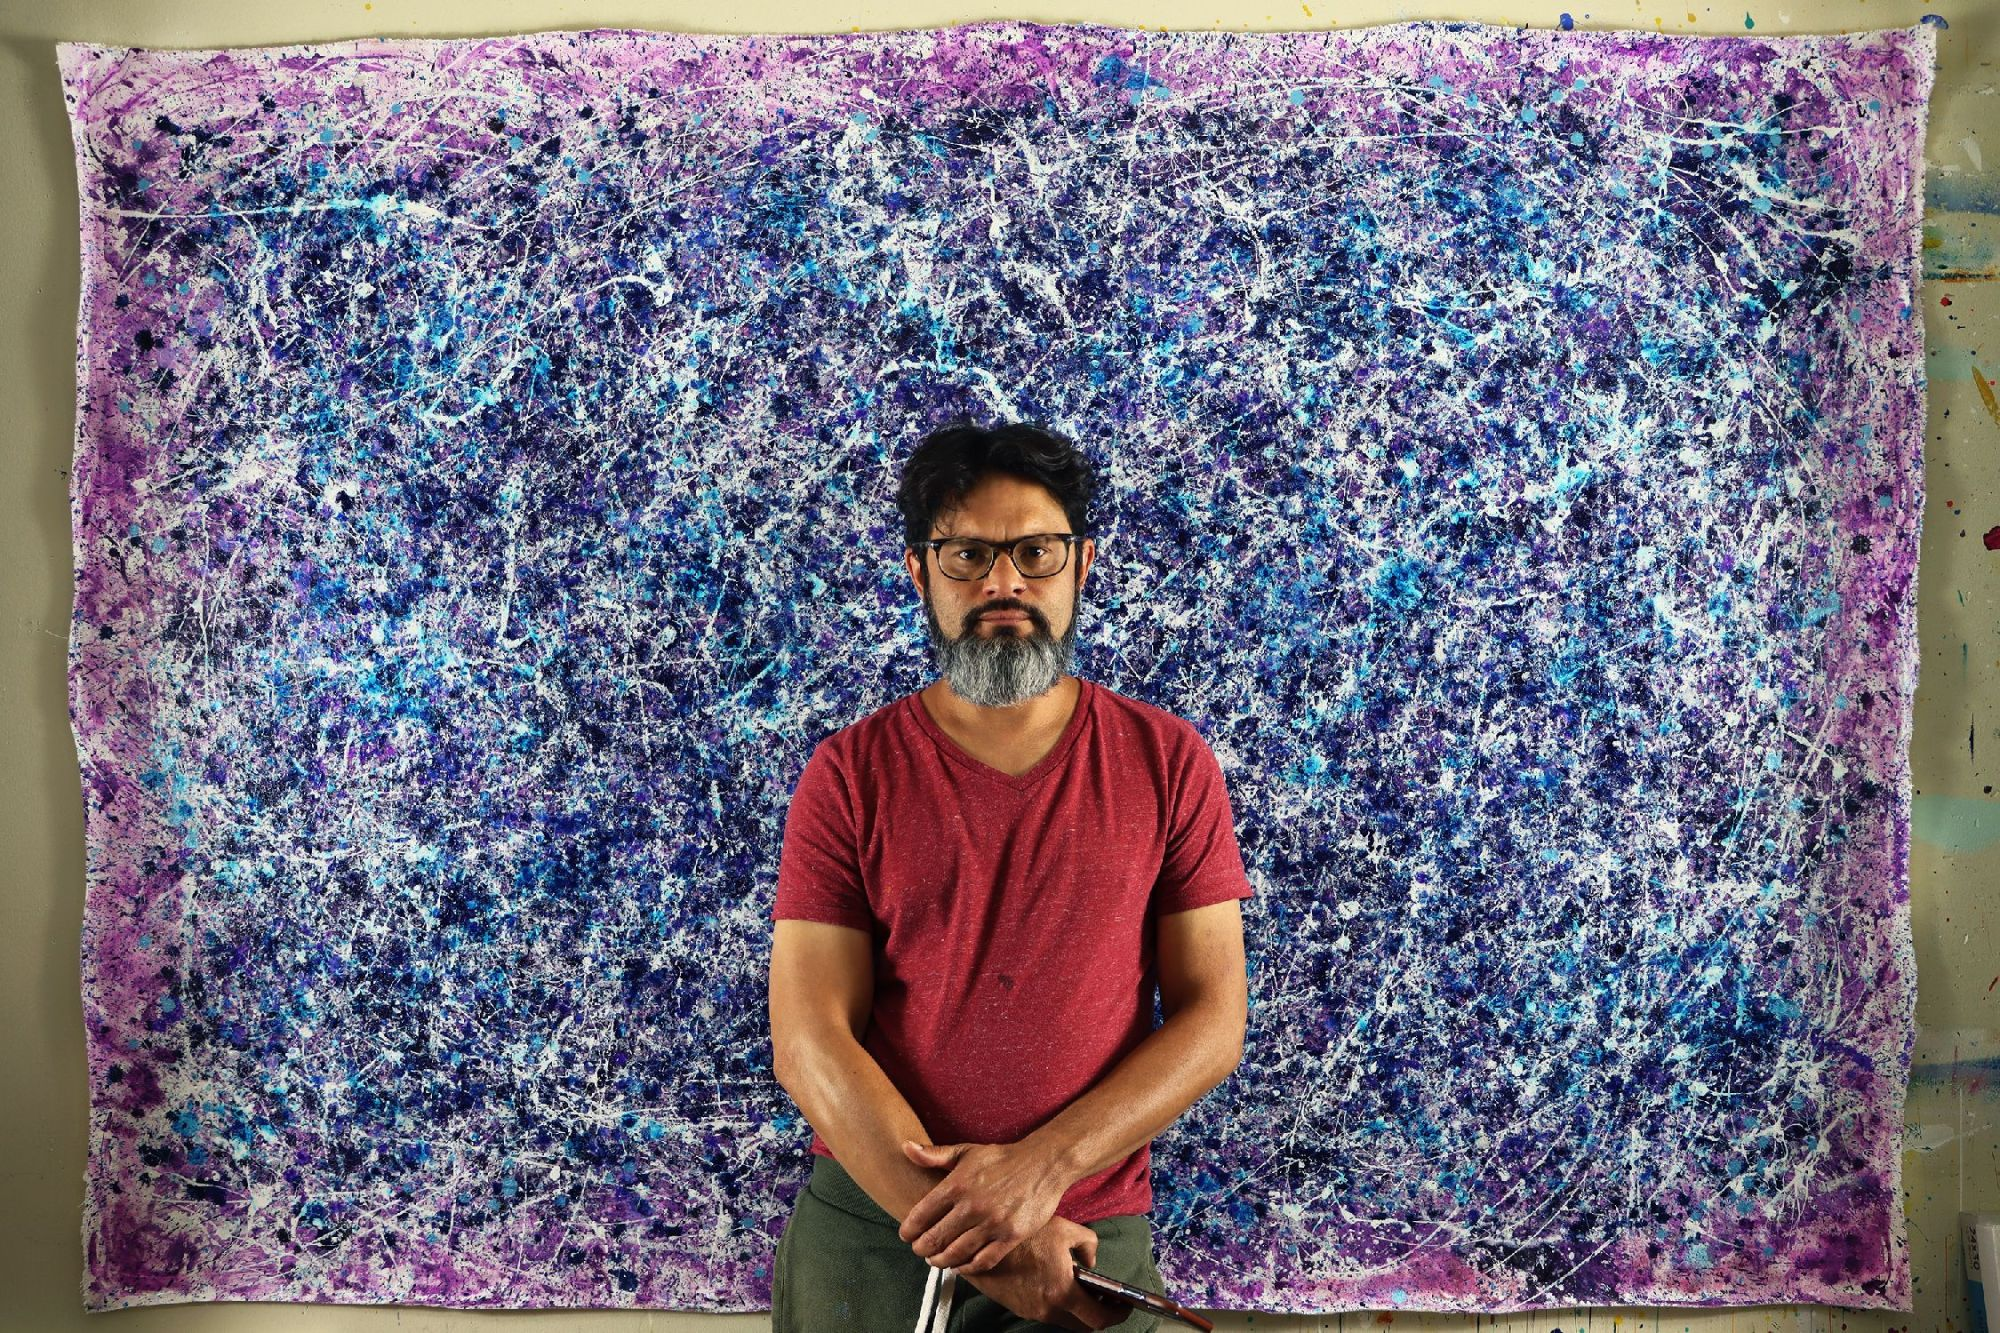 Artist Nestor Toro and his work - Blue Display of Affection (Silver stars) (2020)